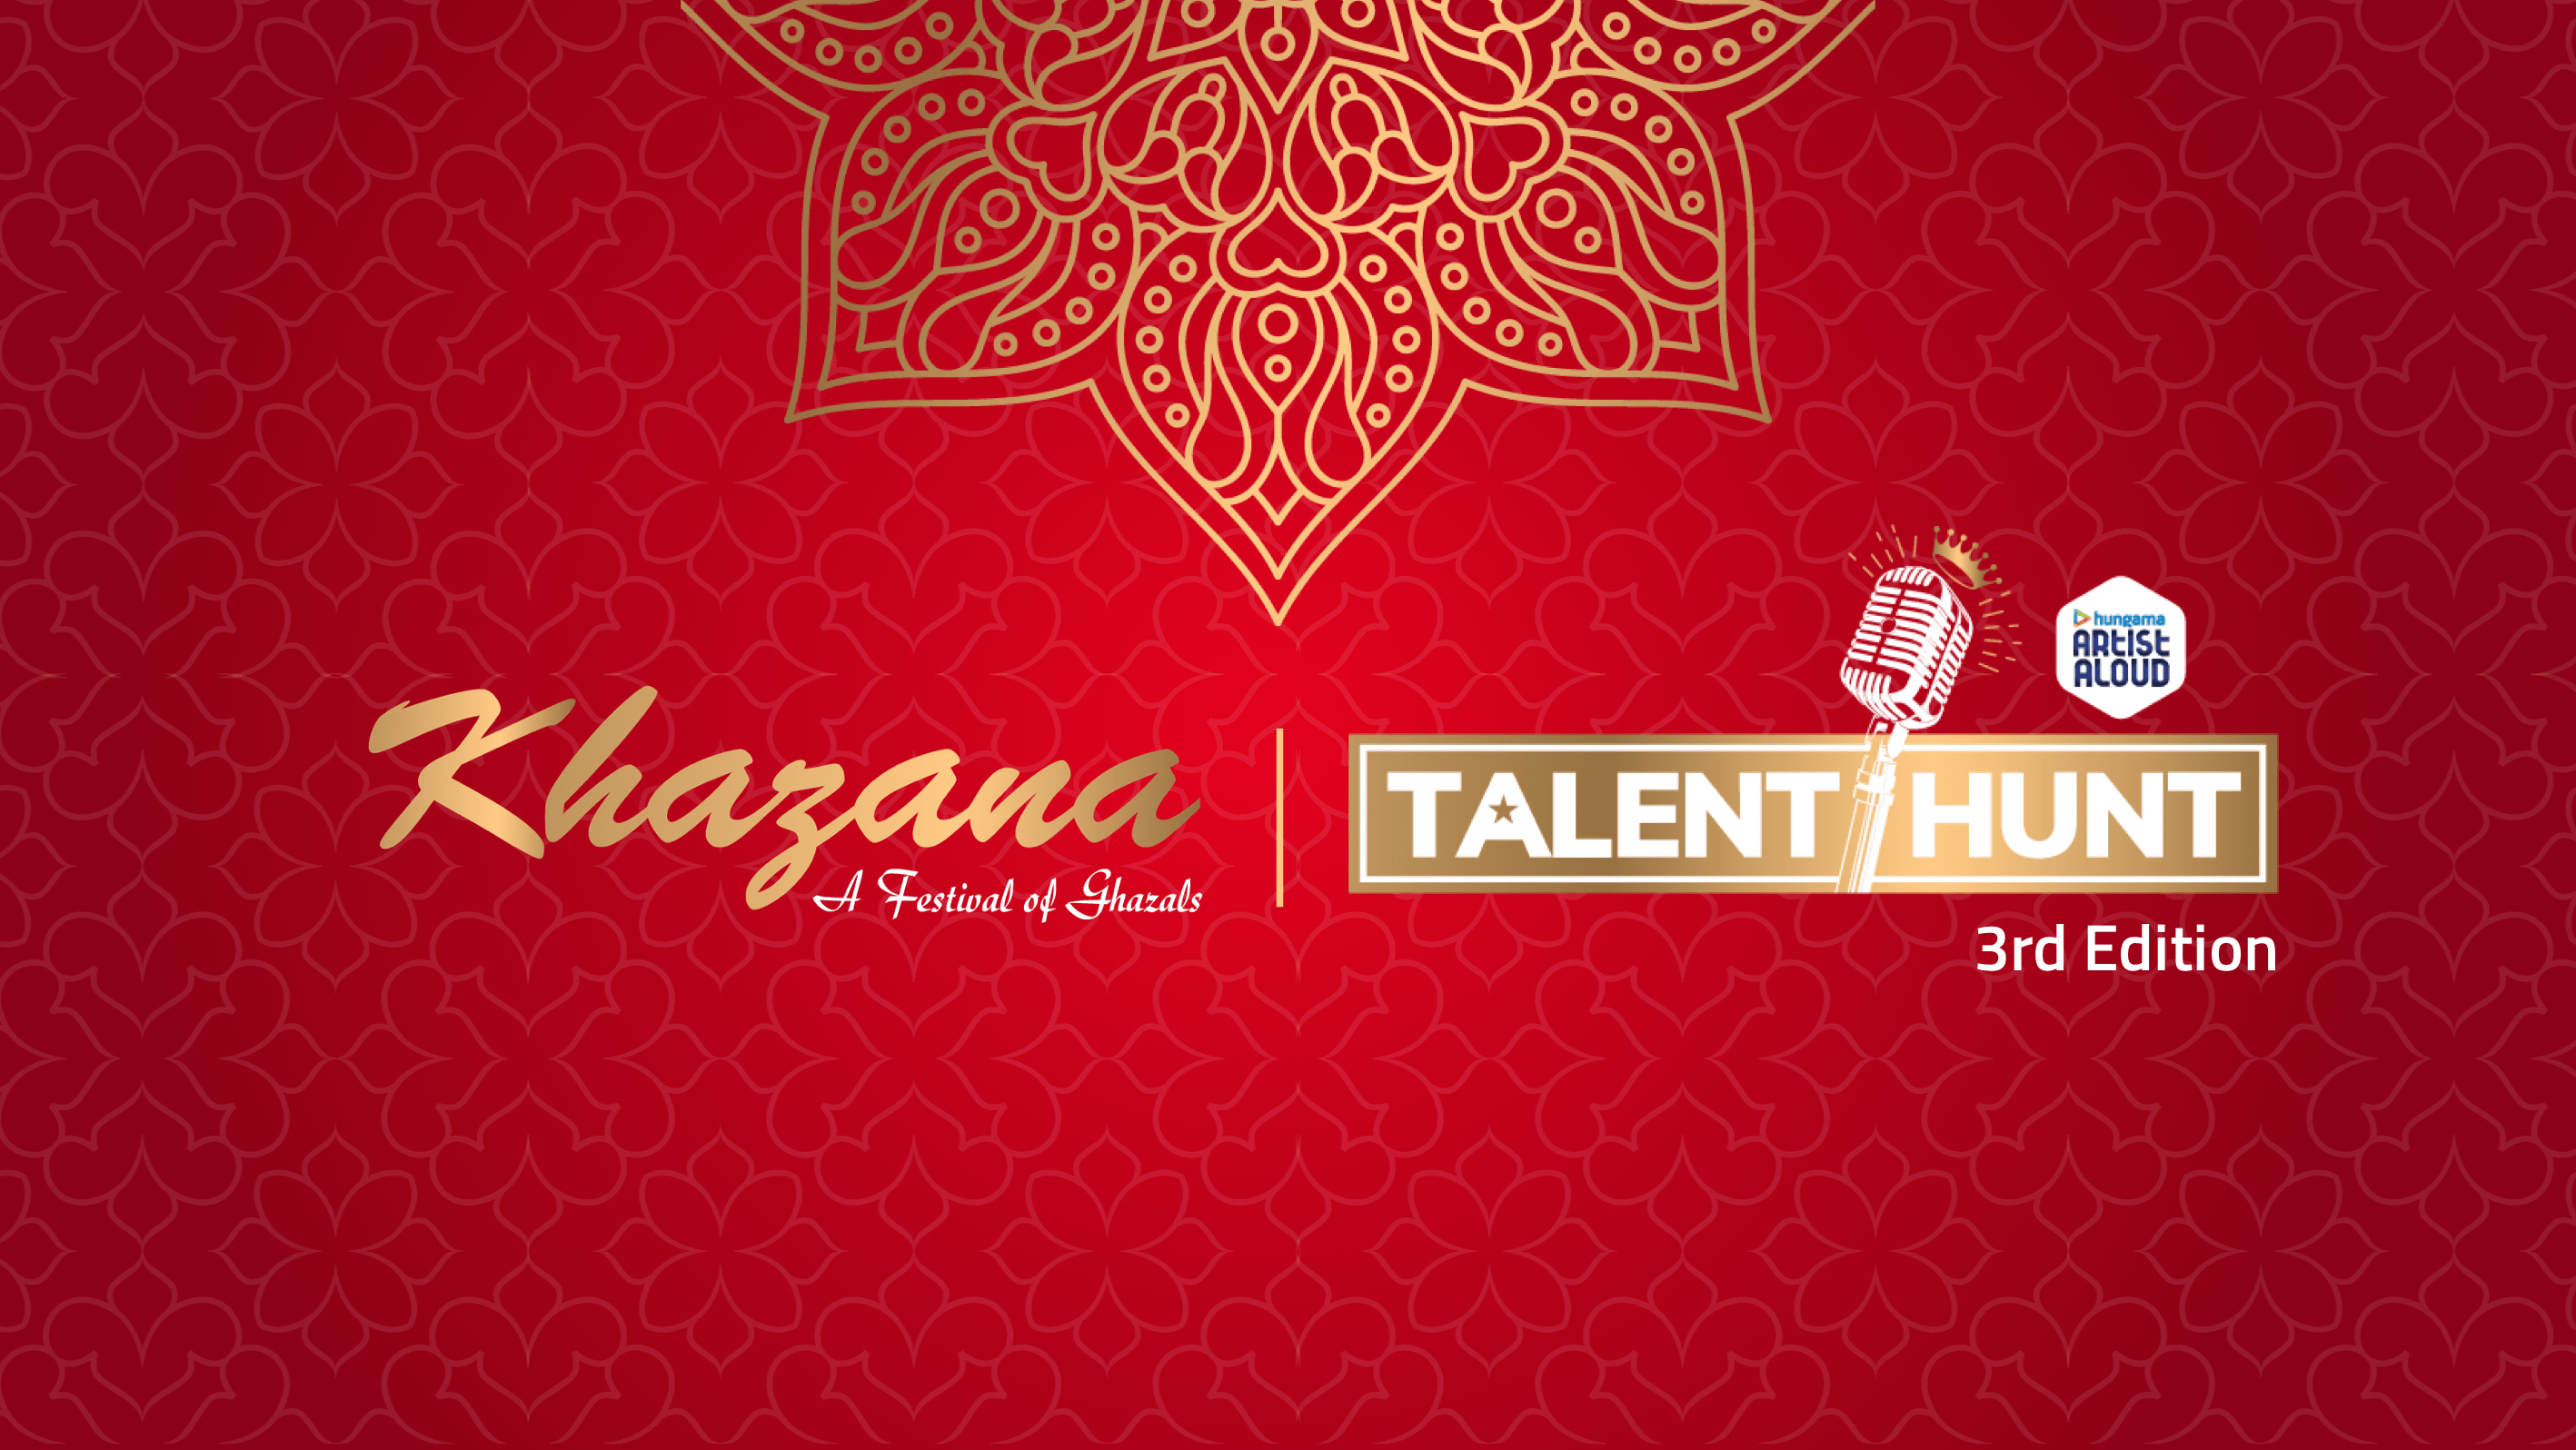 Participate in the 3rd Edition of Khazana Artist Aloud Talent Hunt